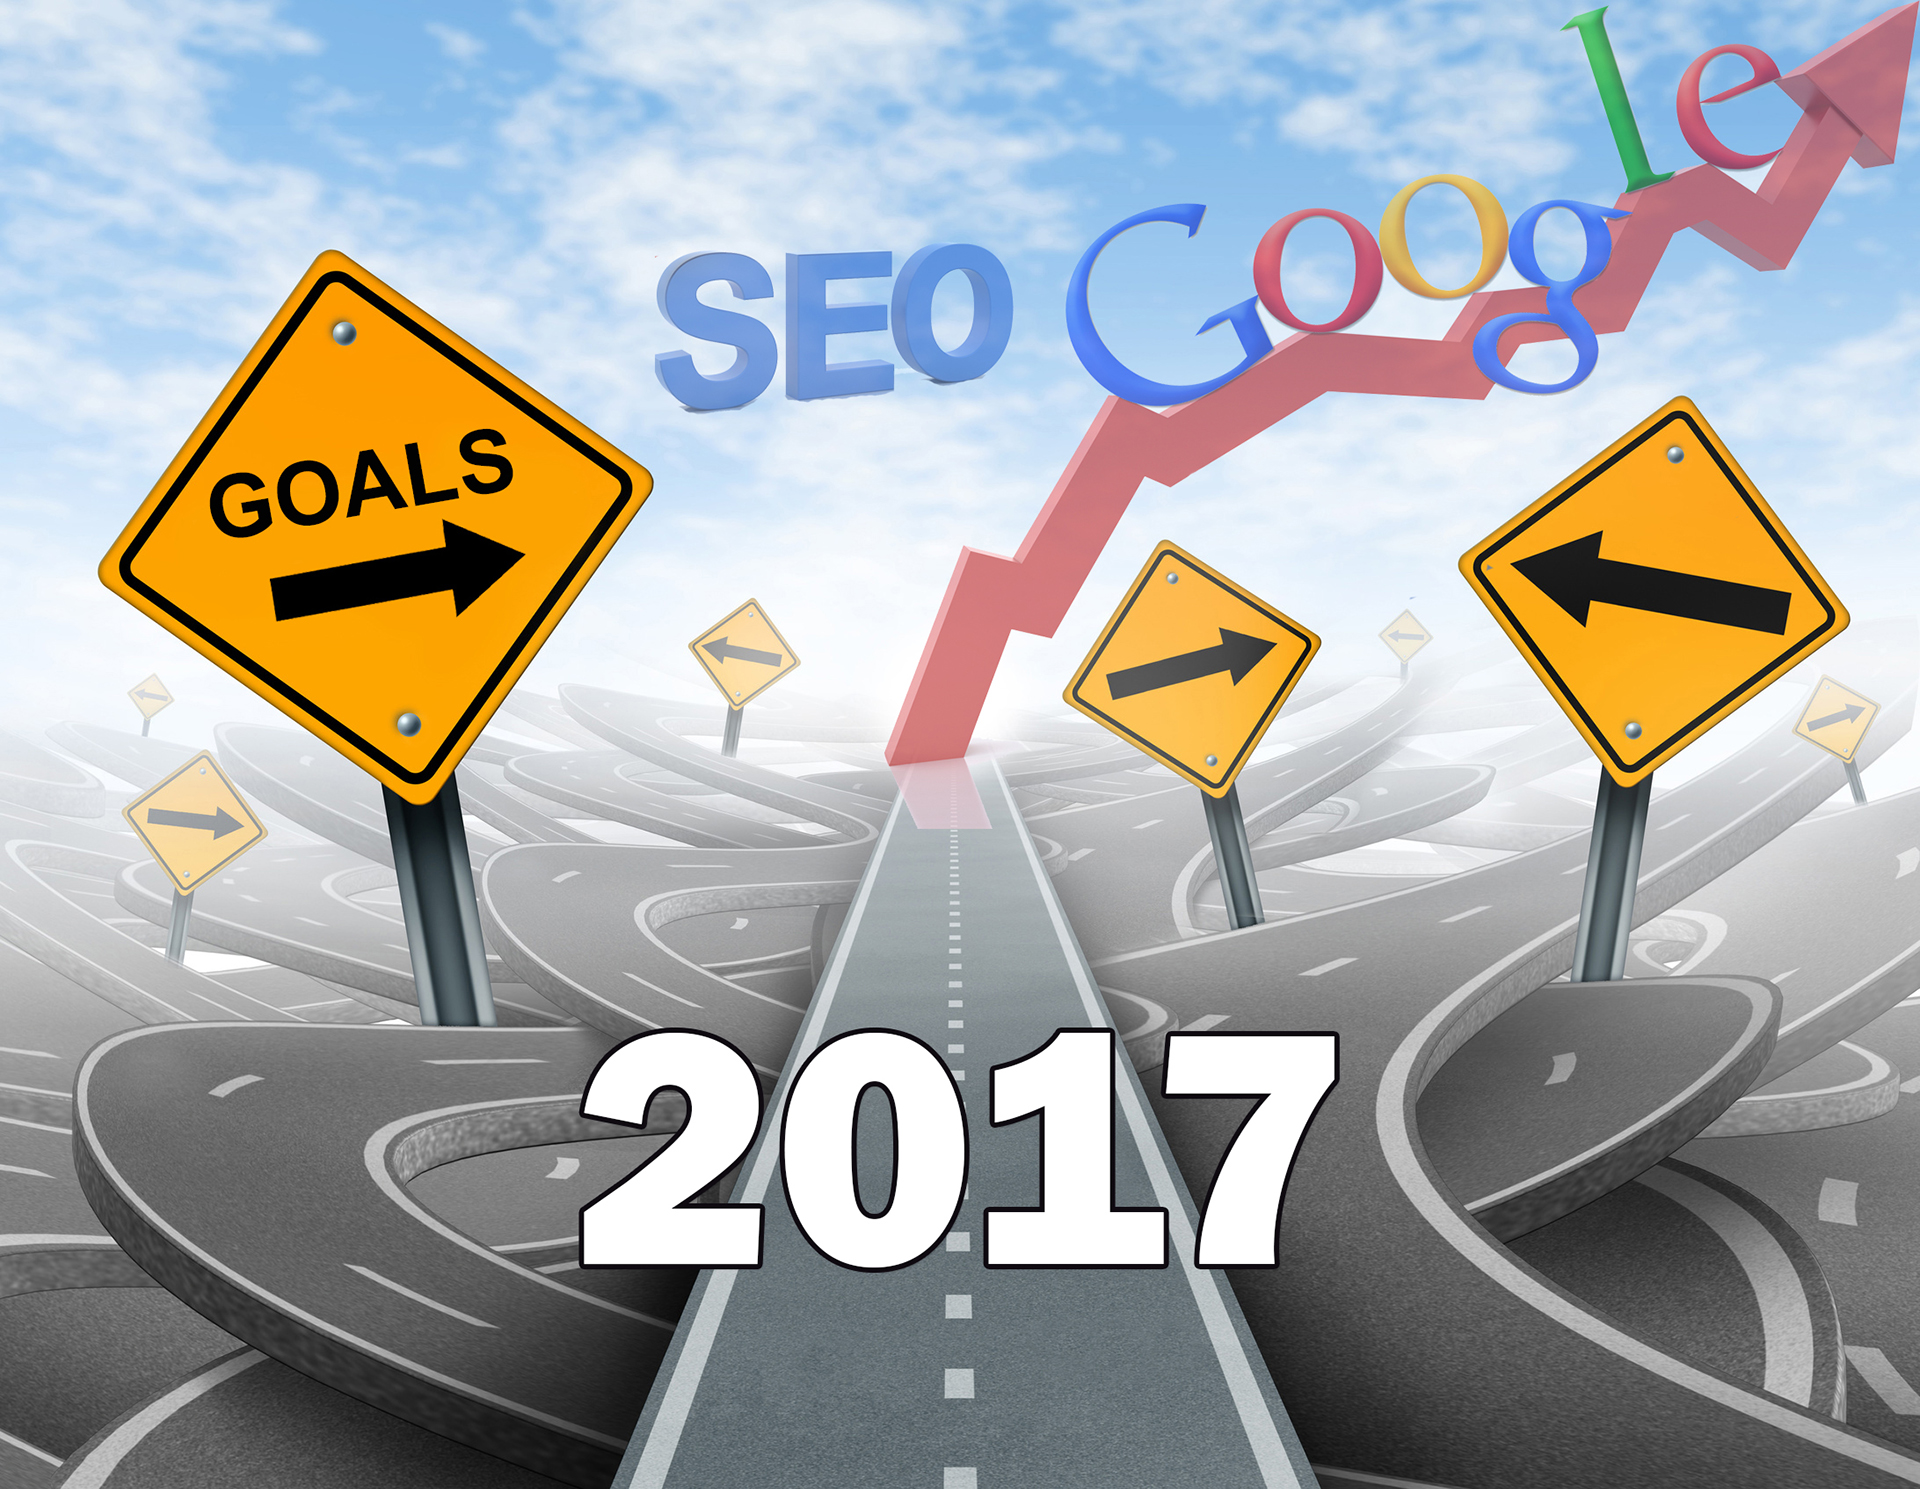 seo goals for 2017